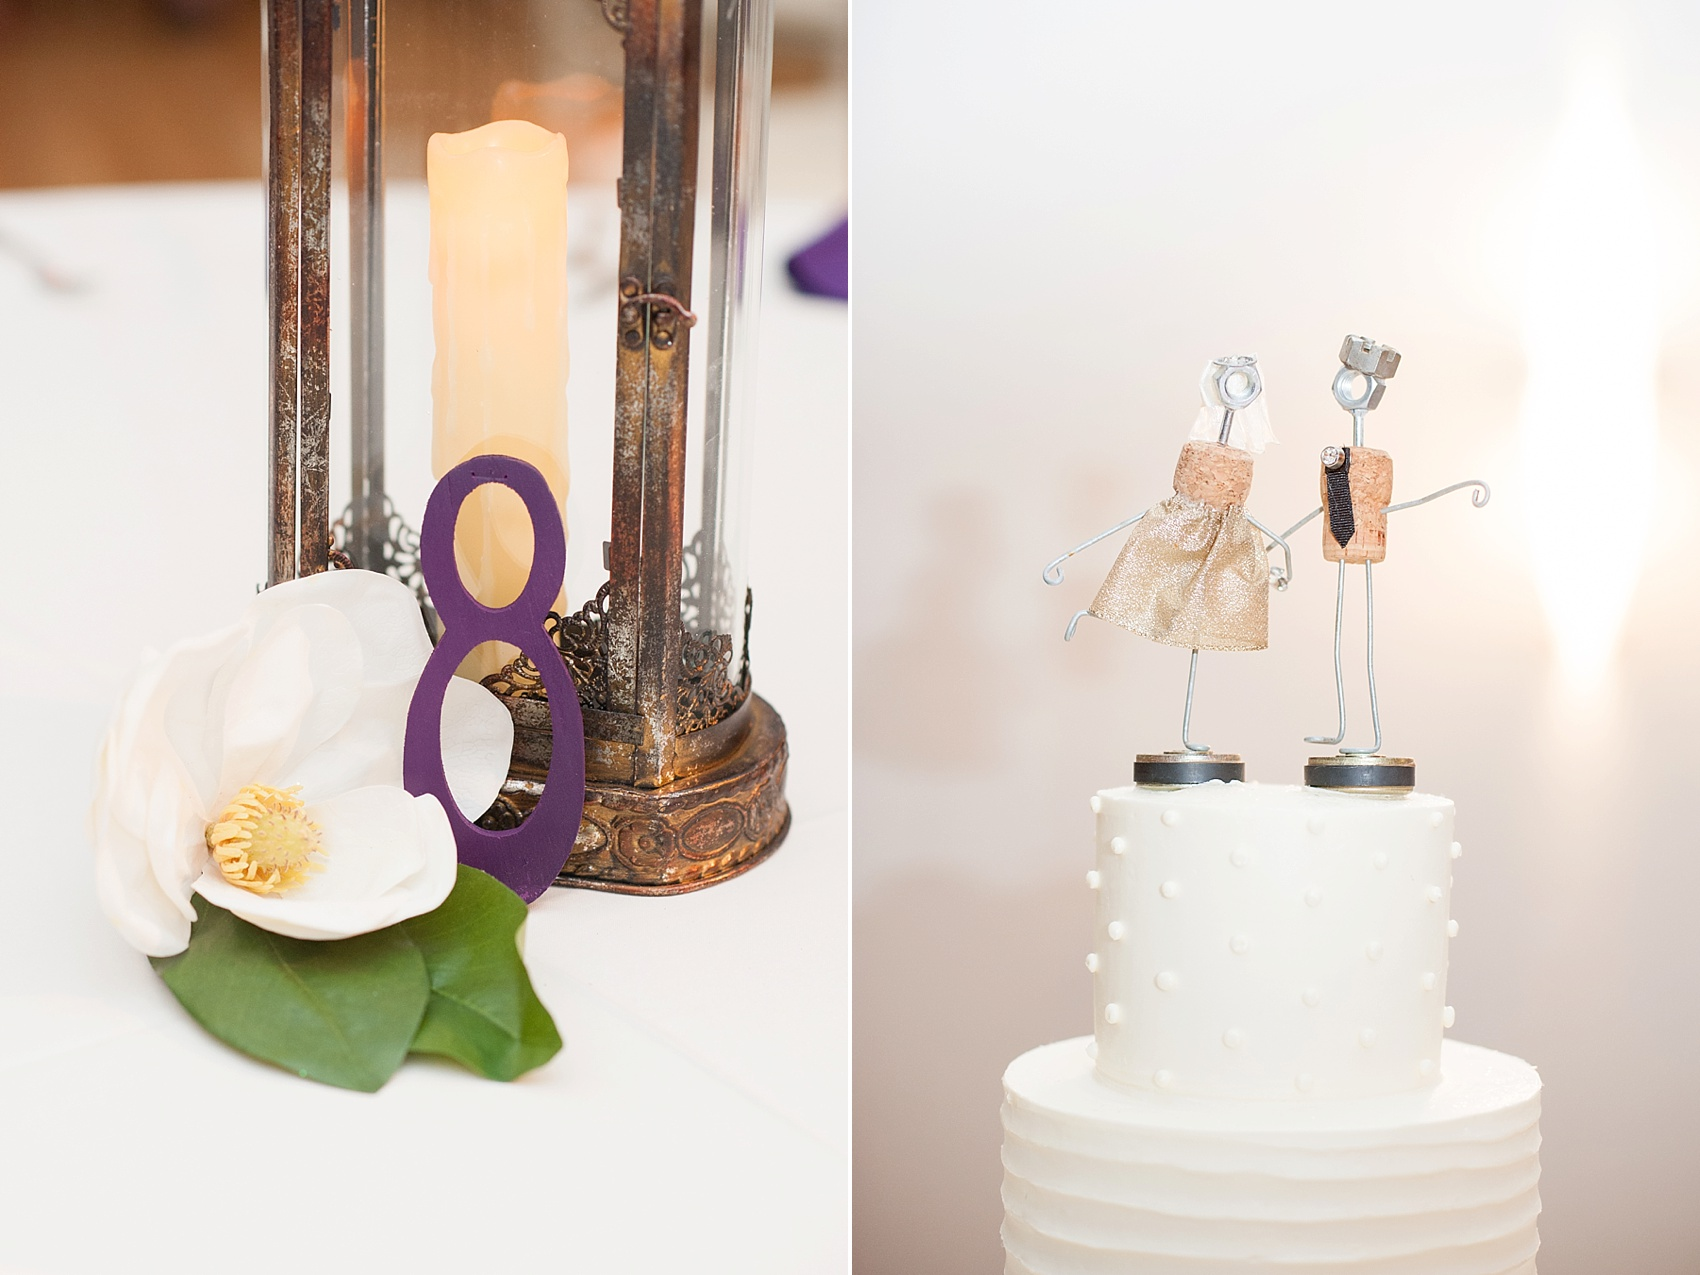 Table number and cake topper for a wedding at The Center, downtown Cincinnati, Ohio. Photos by Mikkel Paige Photography.